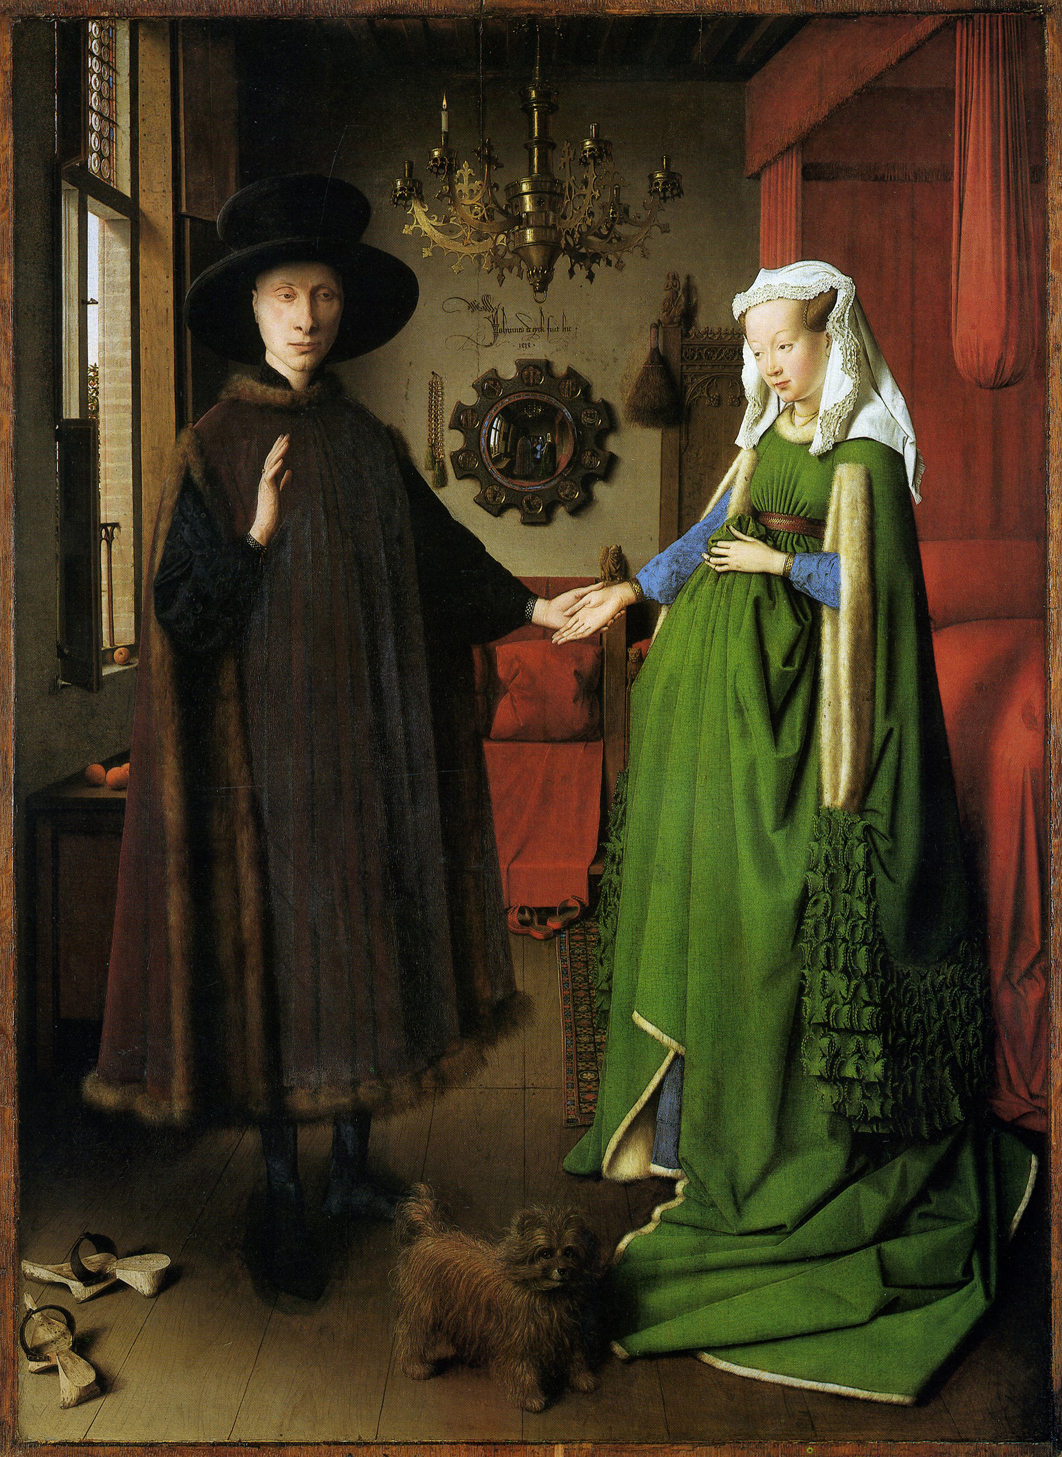 Jan van Eyck, Arnolfini Double Portrait, 1434. Oil painting. National Gallery, London.